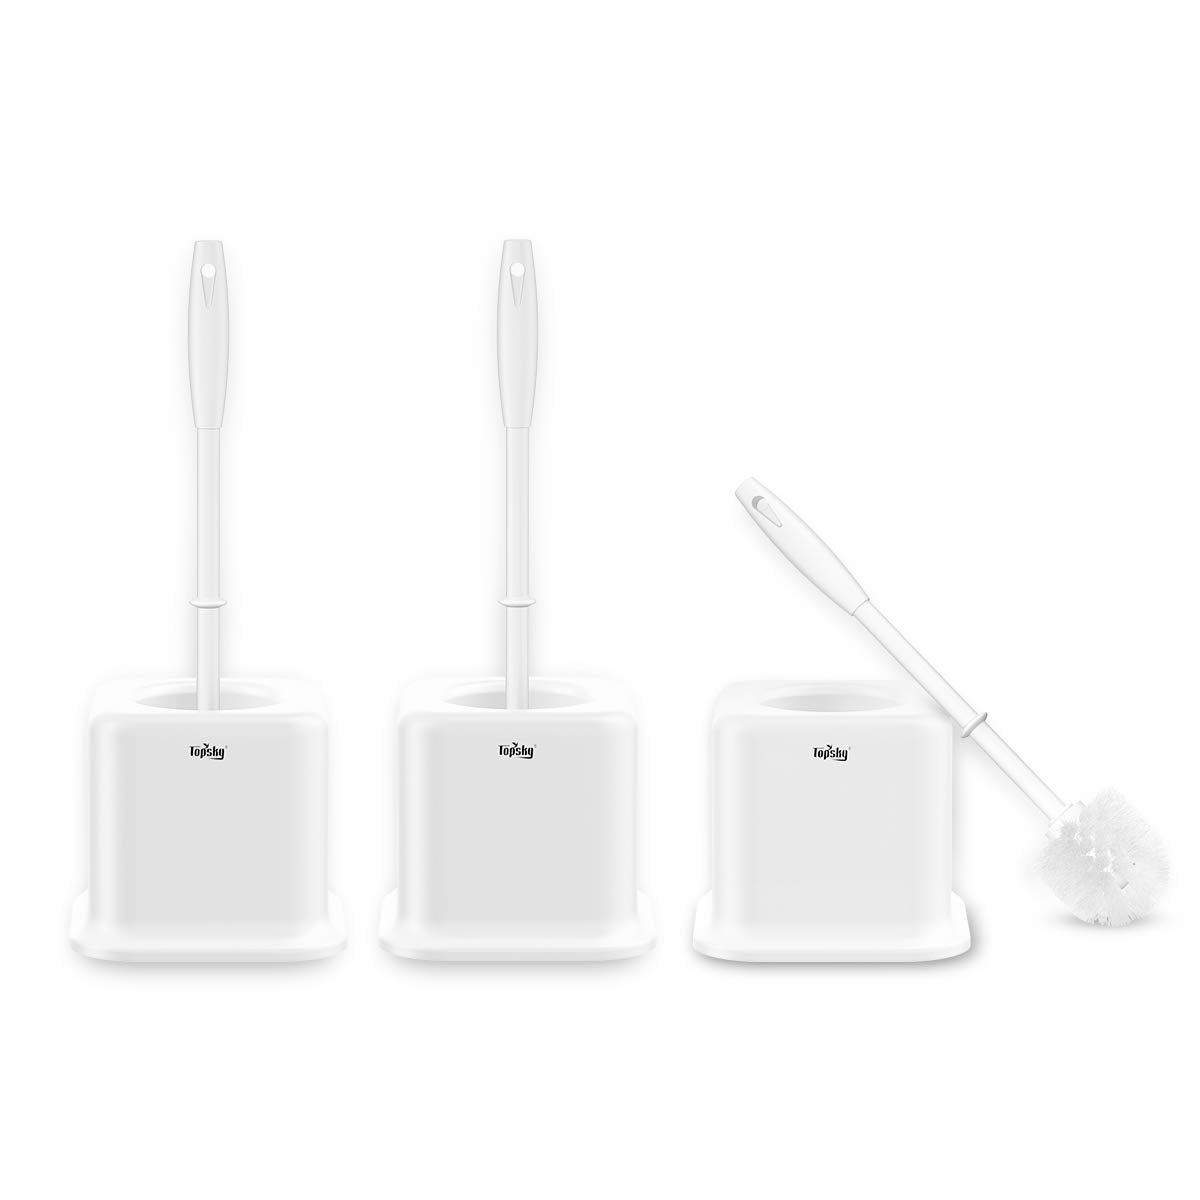 TOPSKY Toilet Brush with Holder, White, Pack of 3 Set